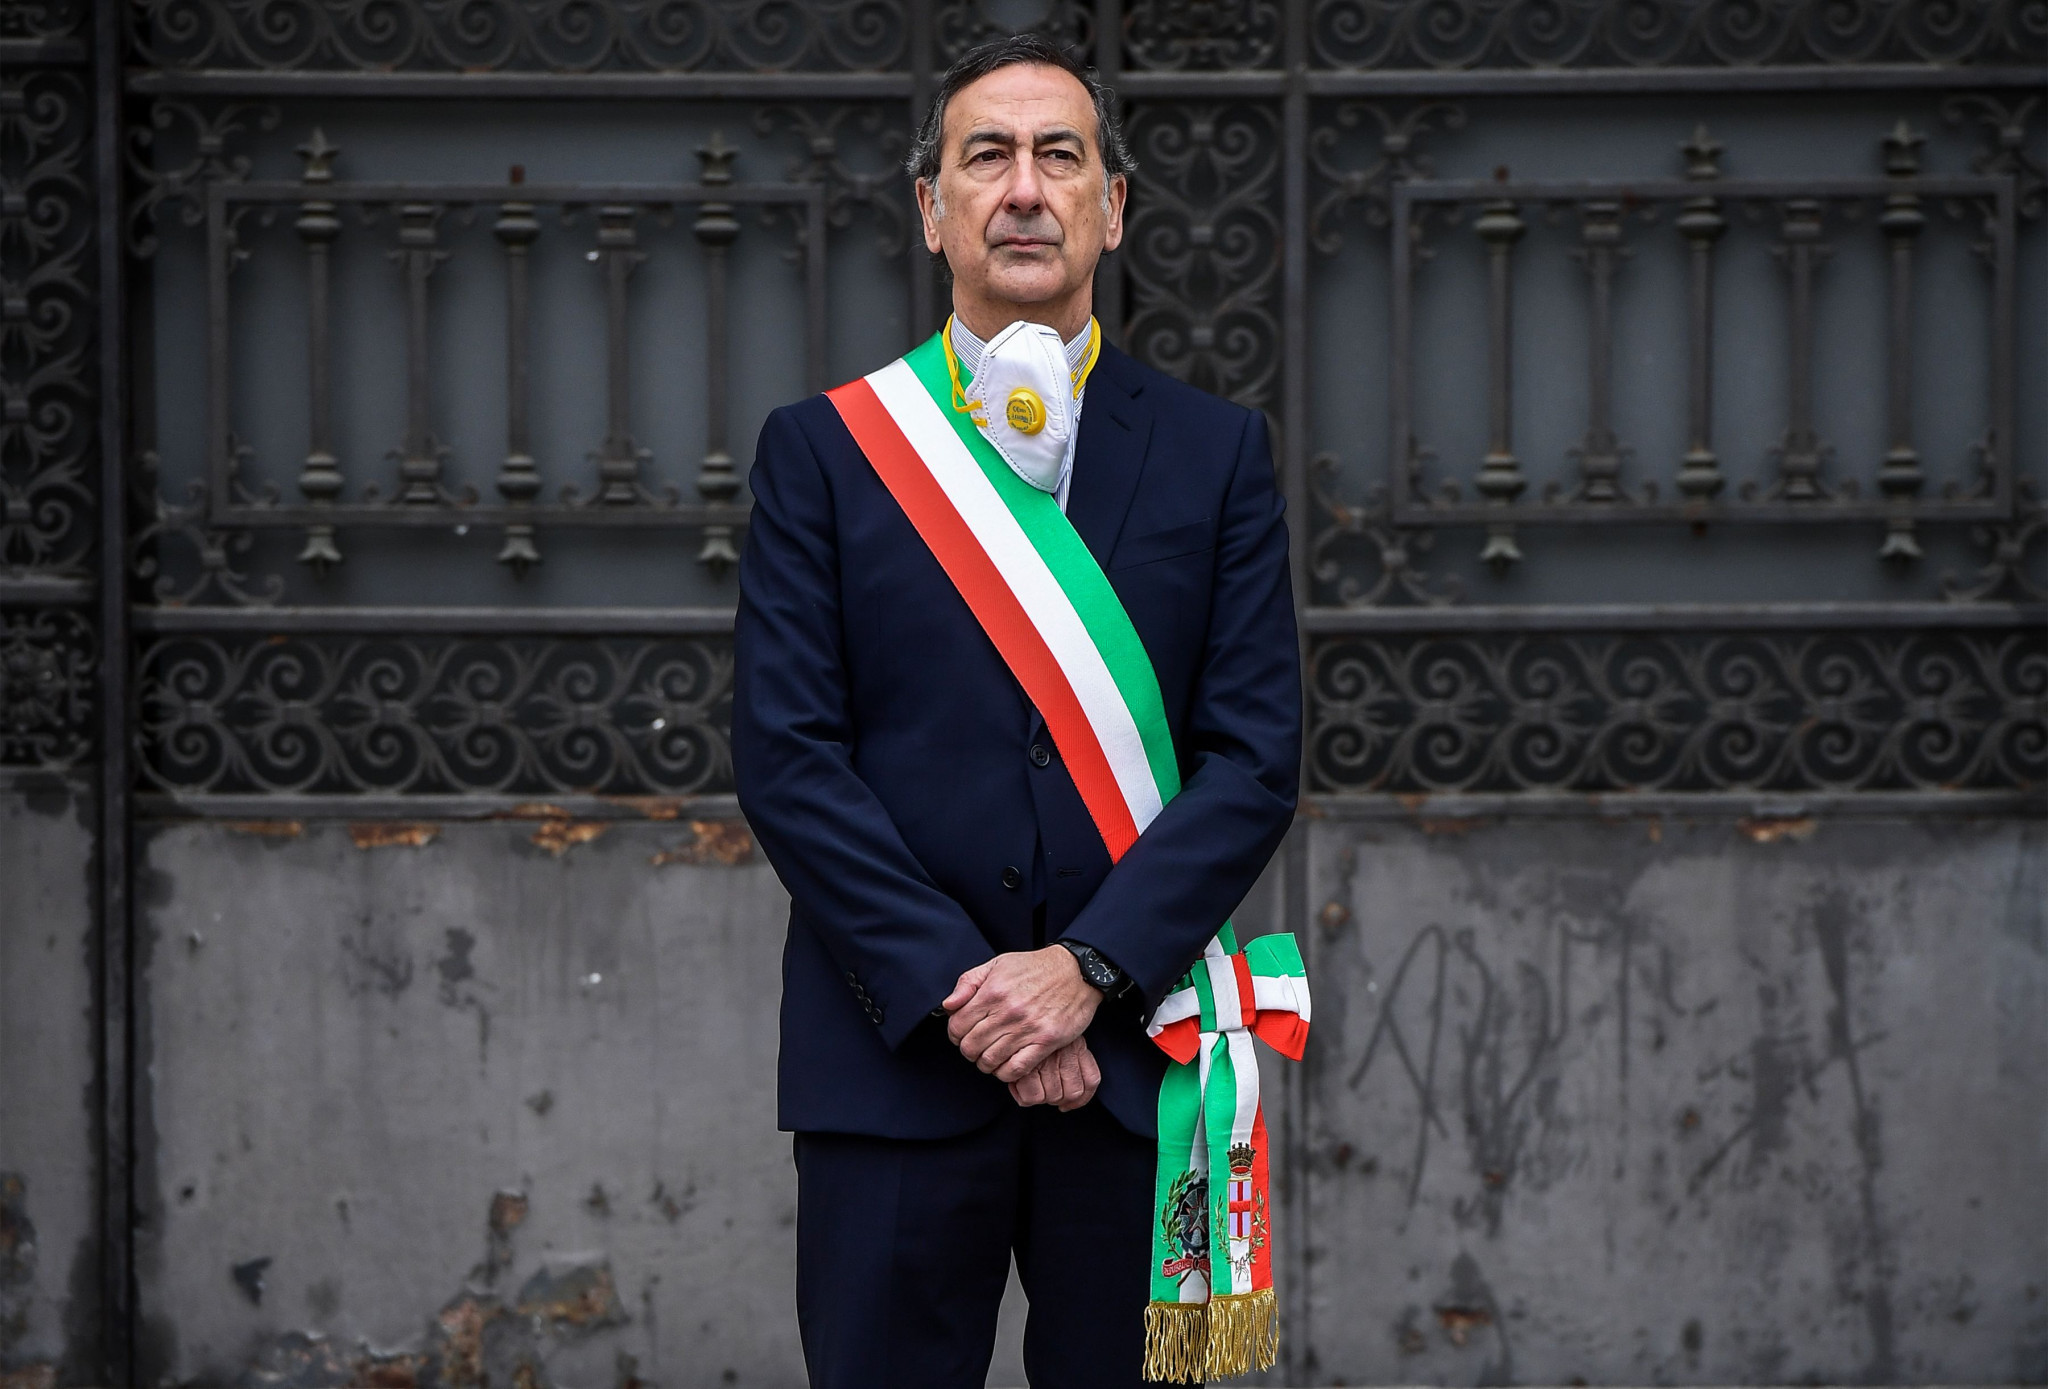 Milan Mayor says Italy's Tokyo 2020 medals whet appetite for 2026 Winter Olympics